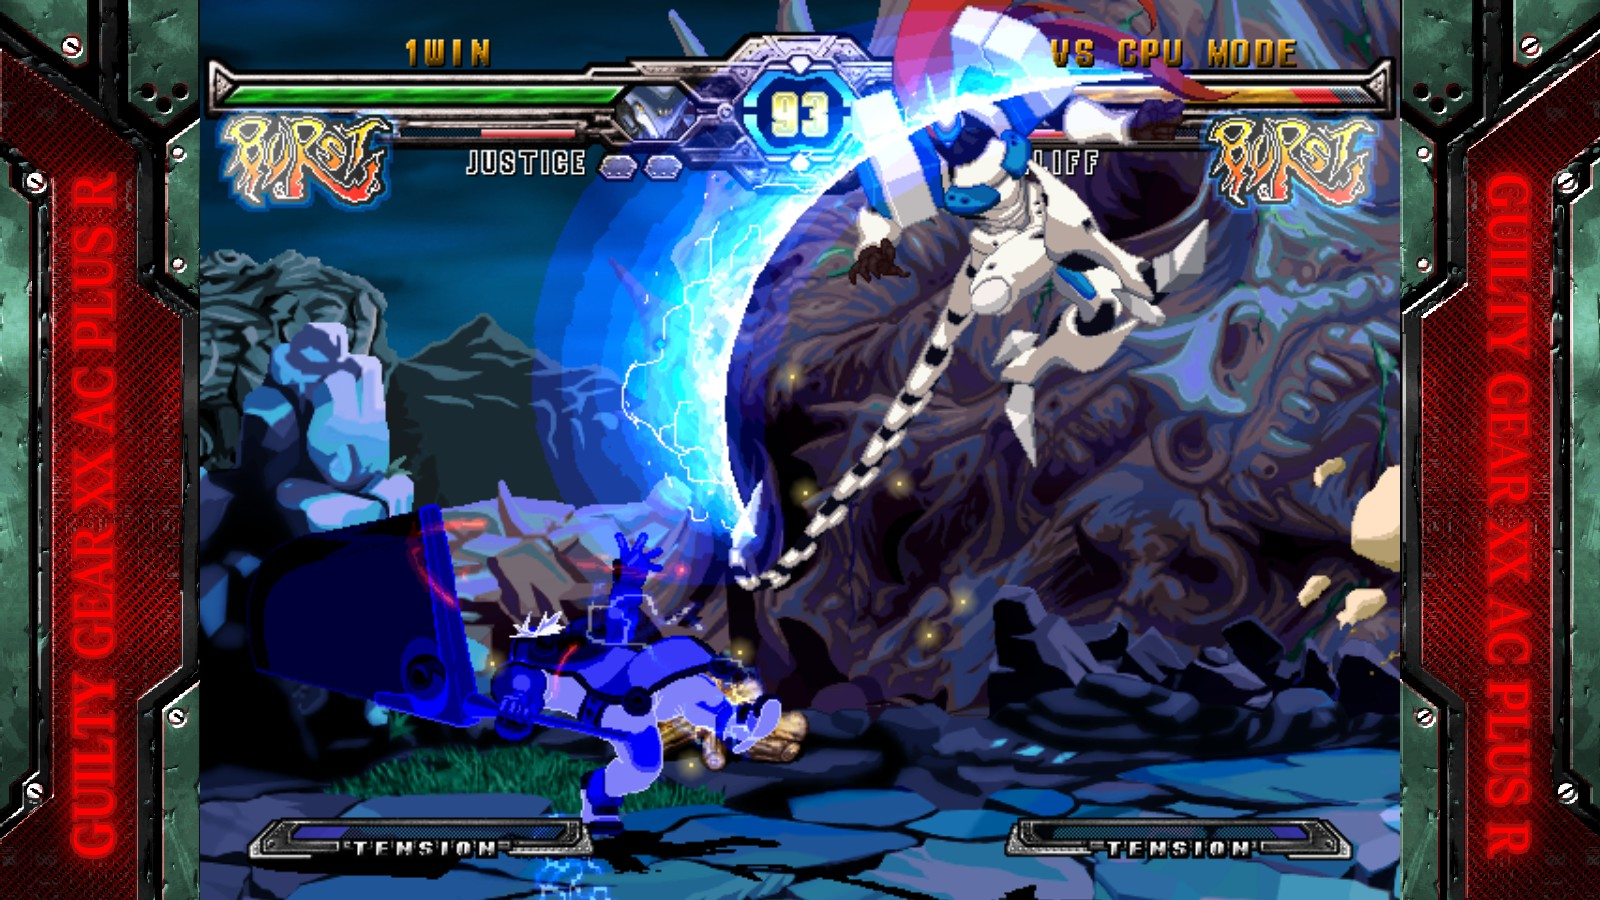 Guilty Gear XX Accent Core Plus R image 2